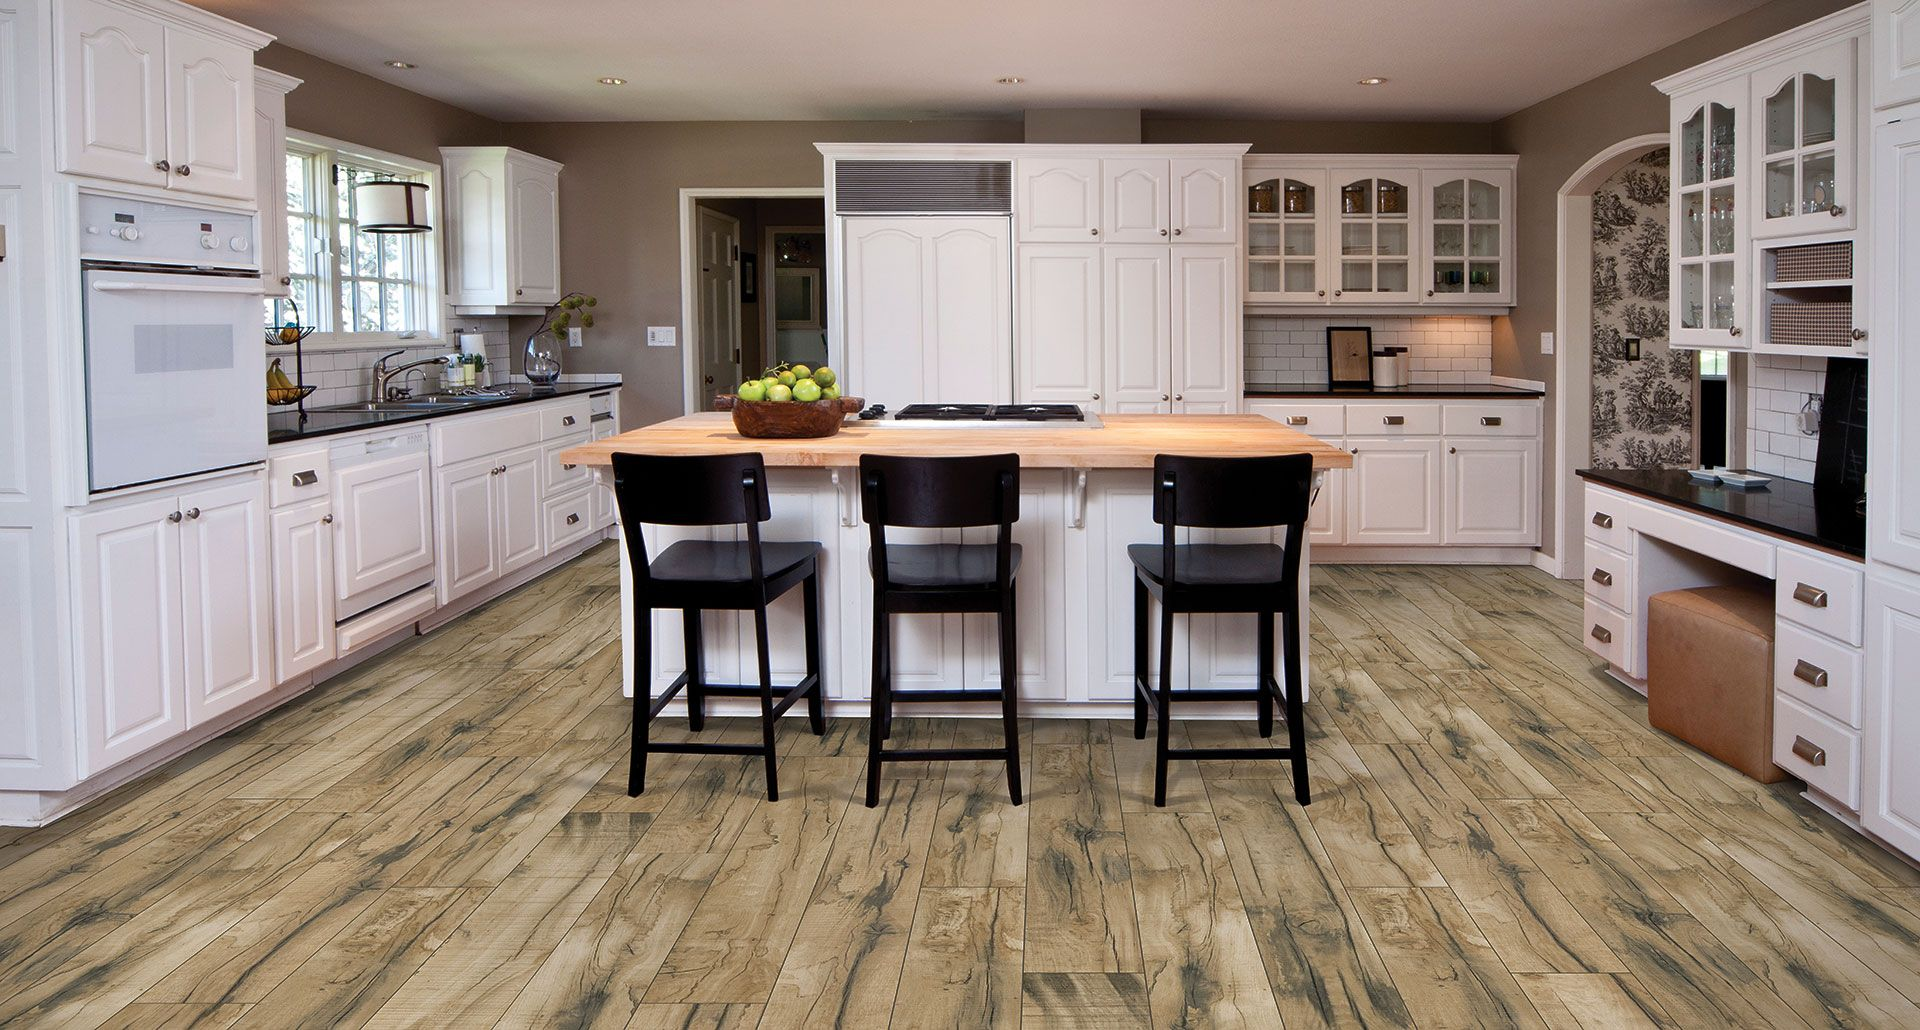 perfect the look flooring pin love oak parquet vinyl is you plank floors wooden effect to for karndean hardwood easy of blonde fit